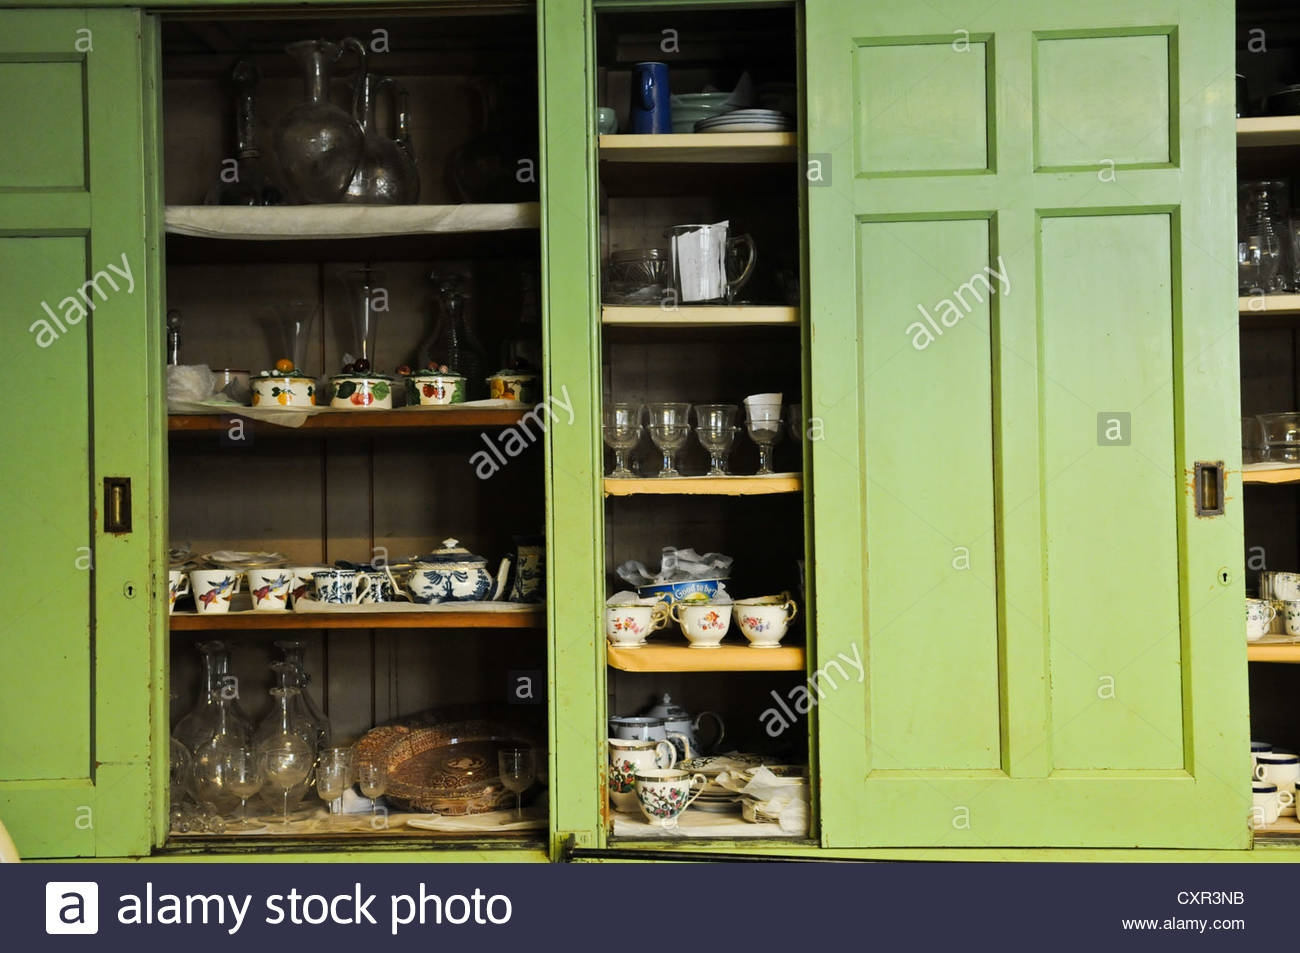 Large Green Old Fashioned Sliding Vintage English Victorian Intended For Large Cupboard With Shelves (Image 15 of 25)